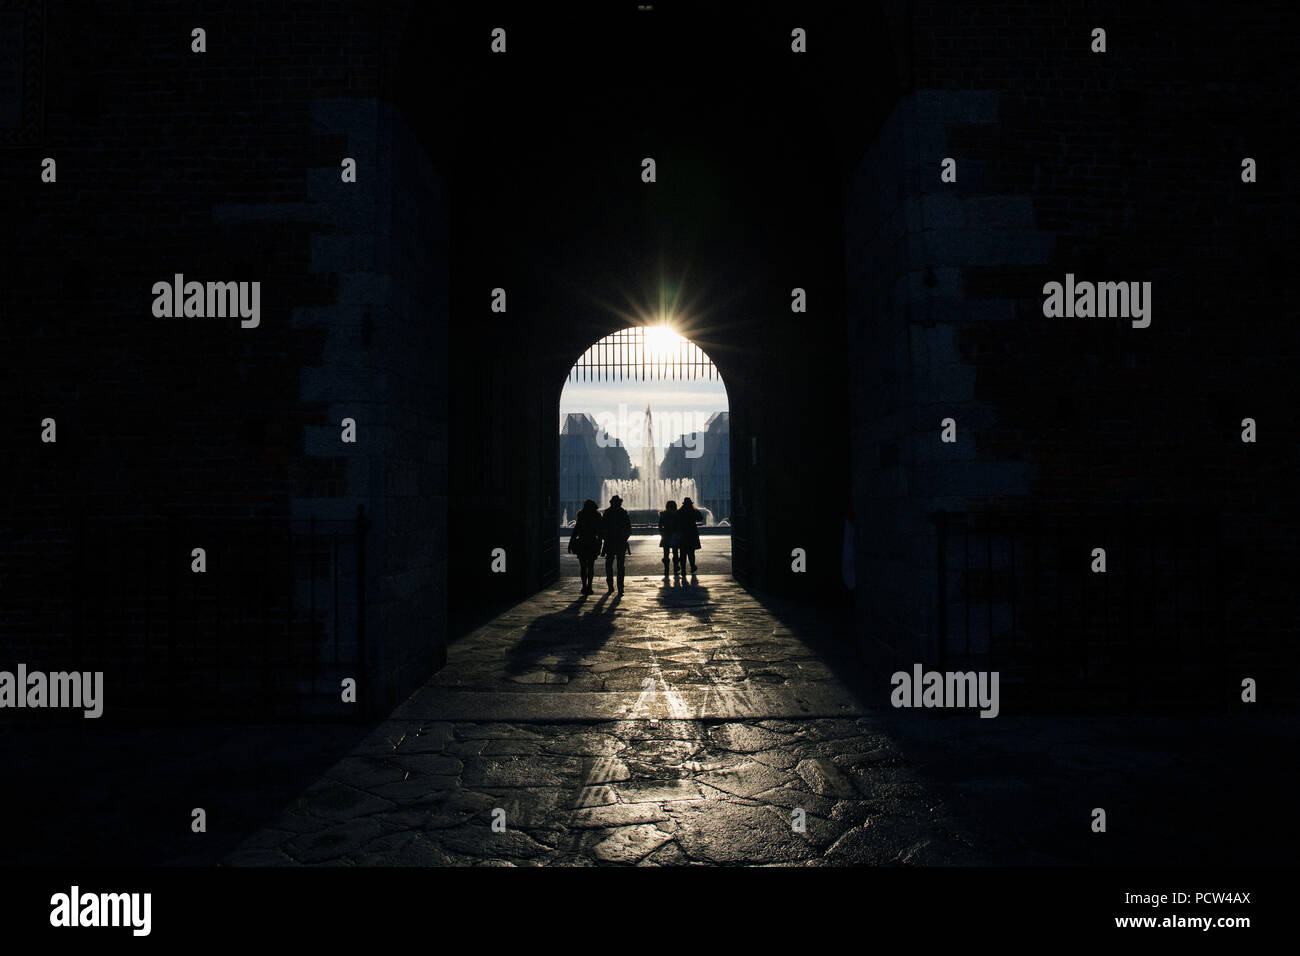 People in a dark passageway, Milan Street Photography, Italy - Stock Image